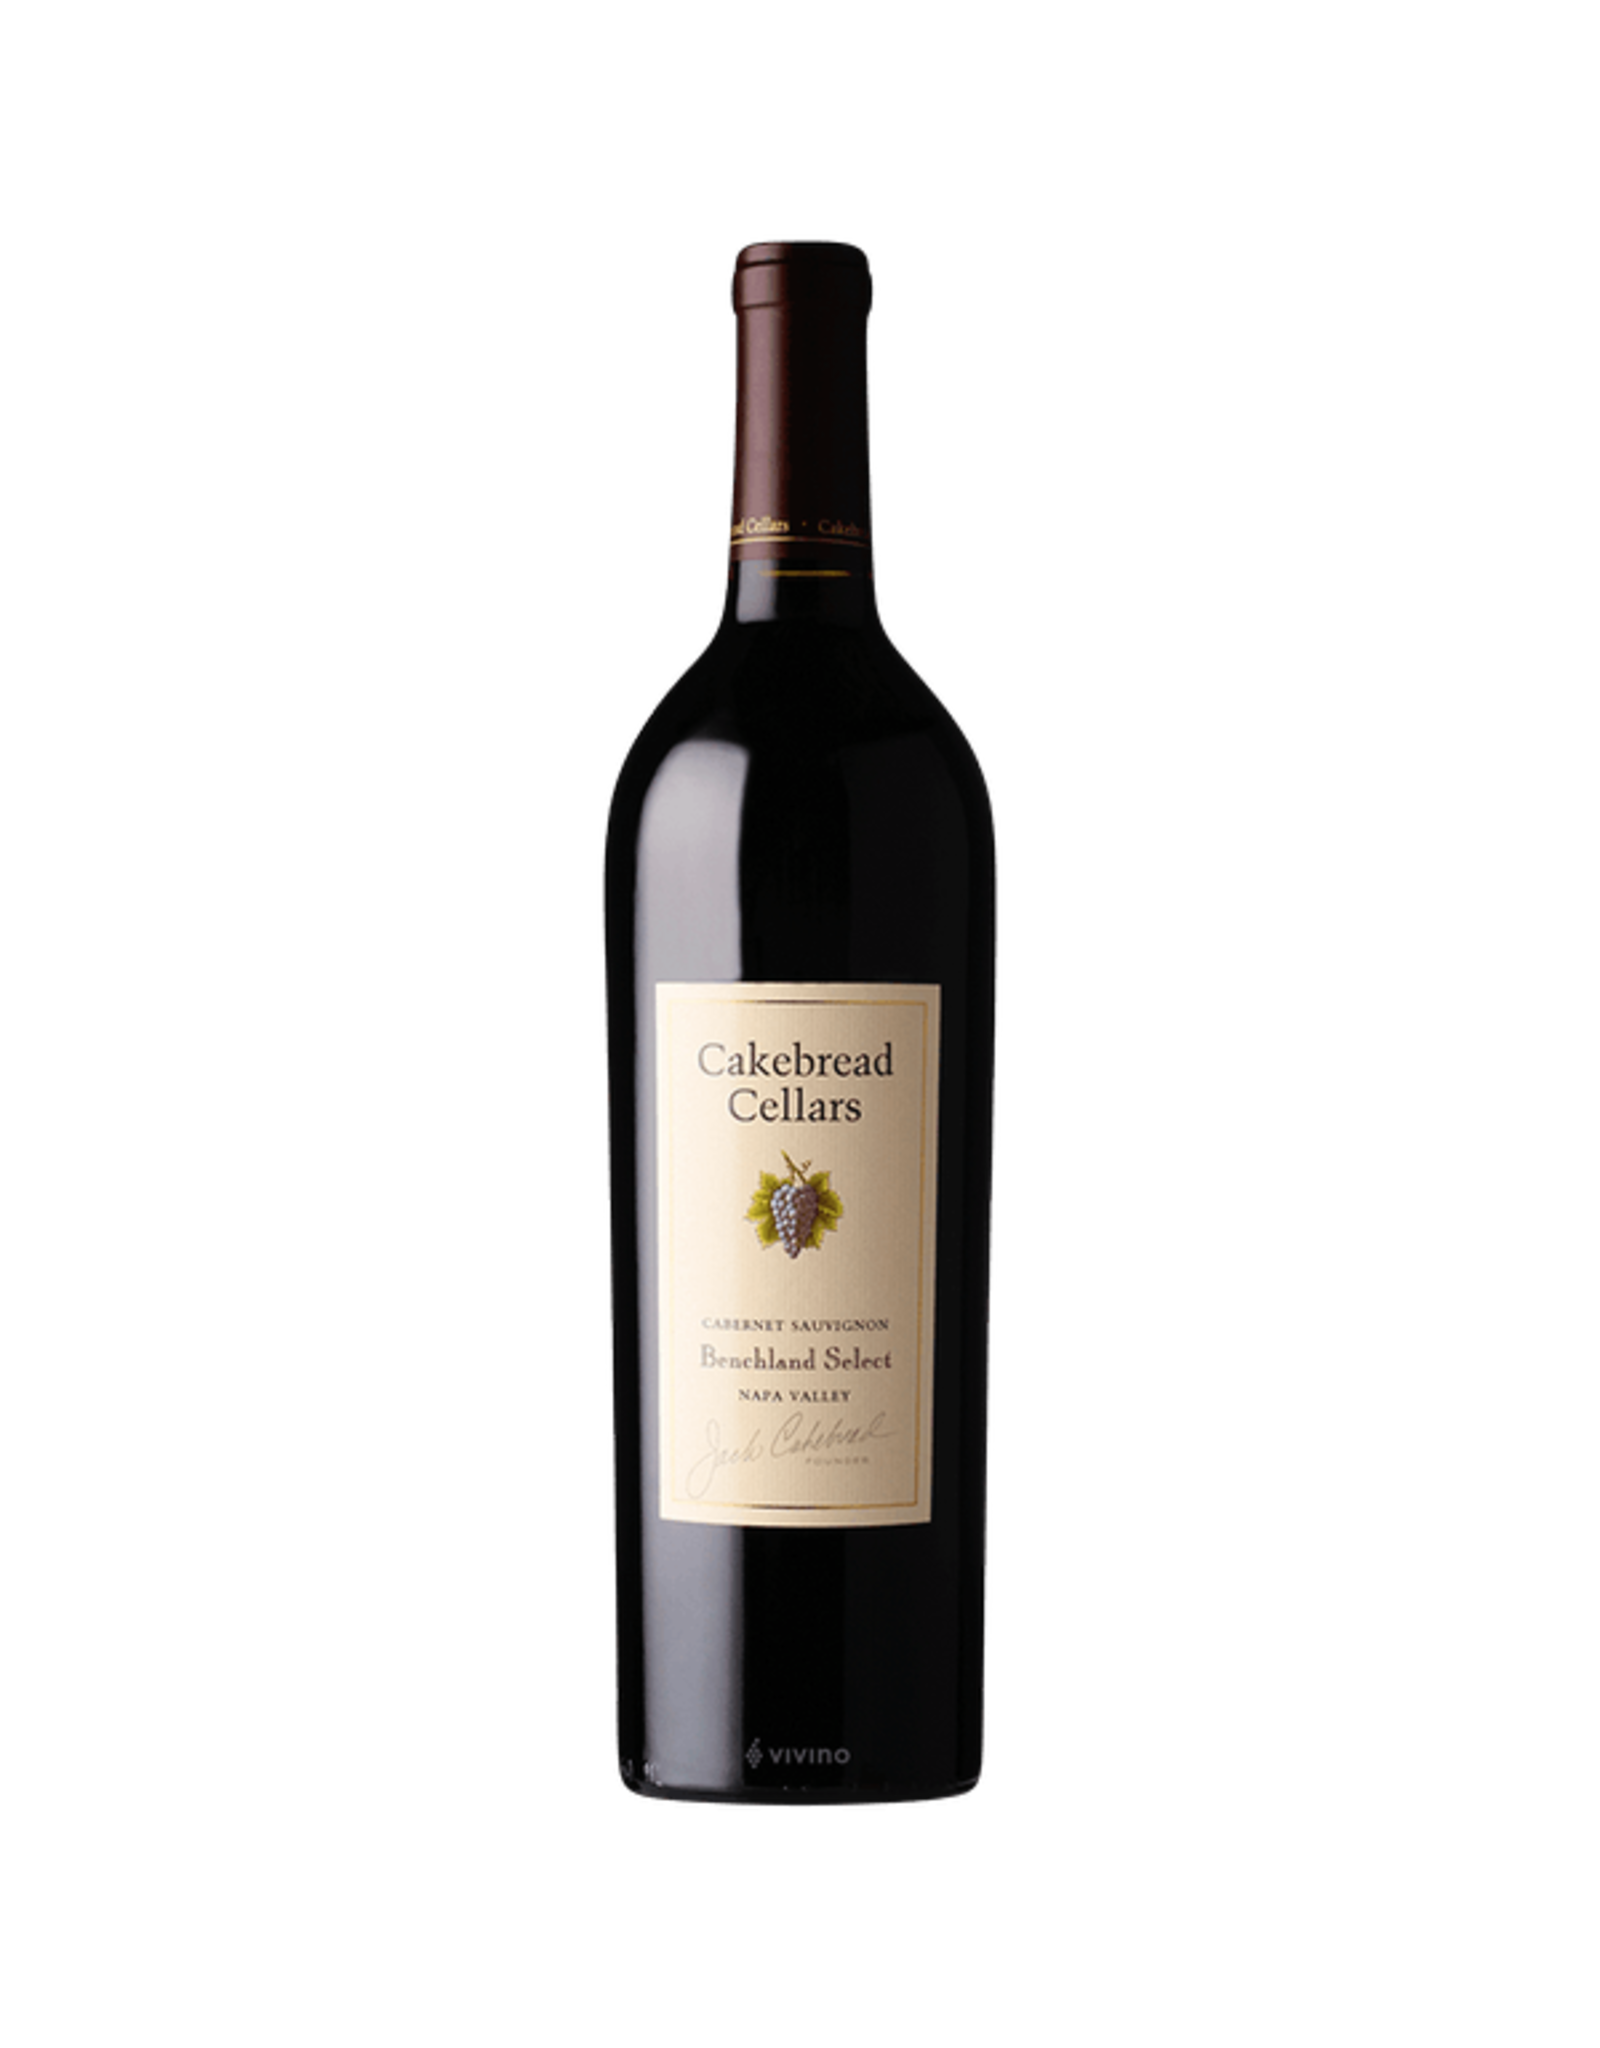 CAKEBREAD CELLARS 2012 BENCHLAND SELECT